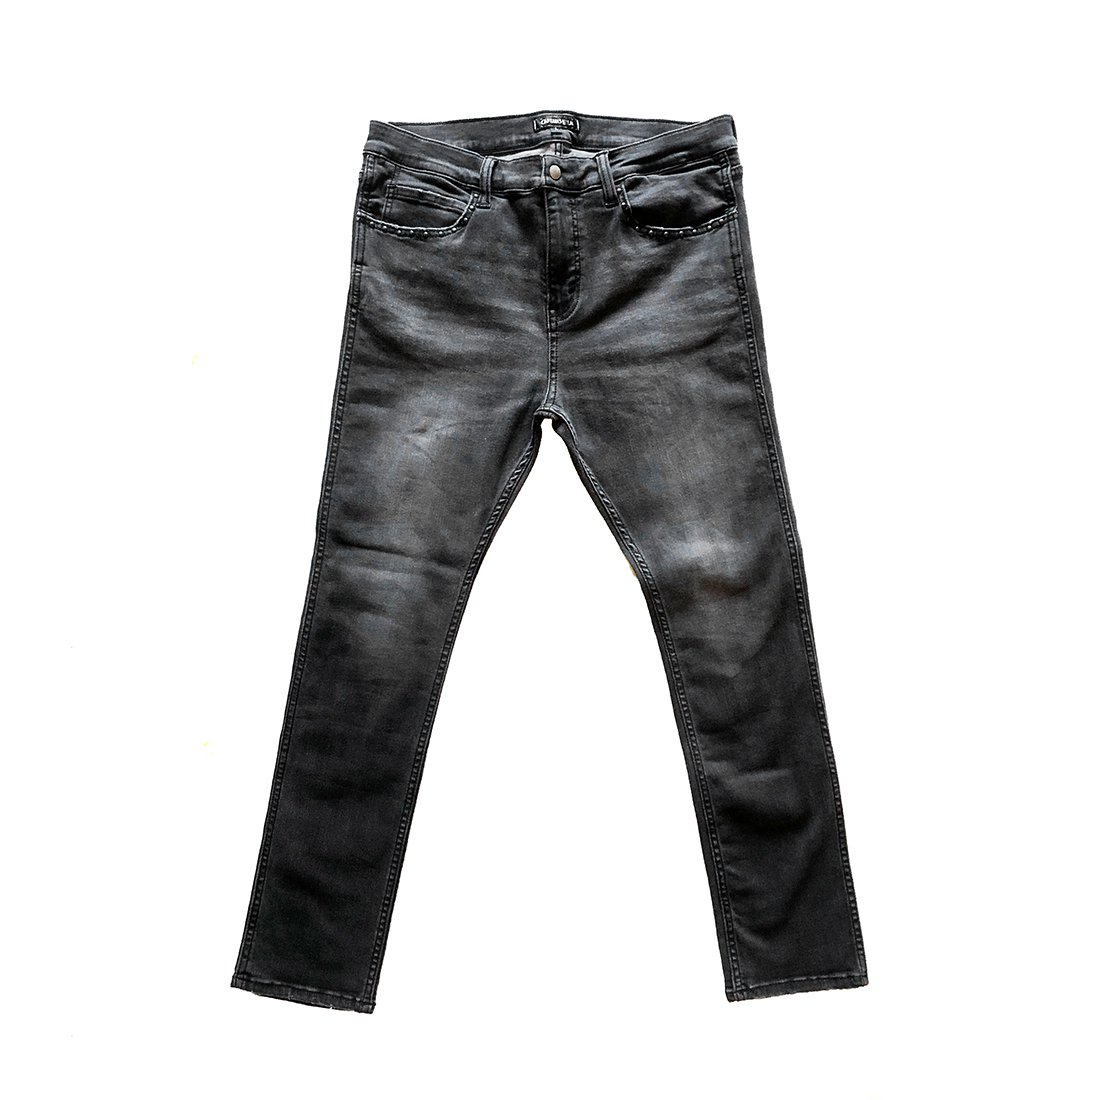 CAPTAINS HELM #NARROW ST BLACK DENIM PANTS -CUSTOM